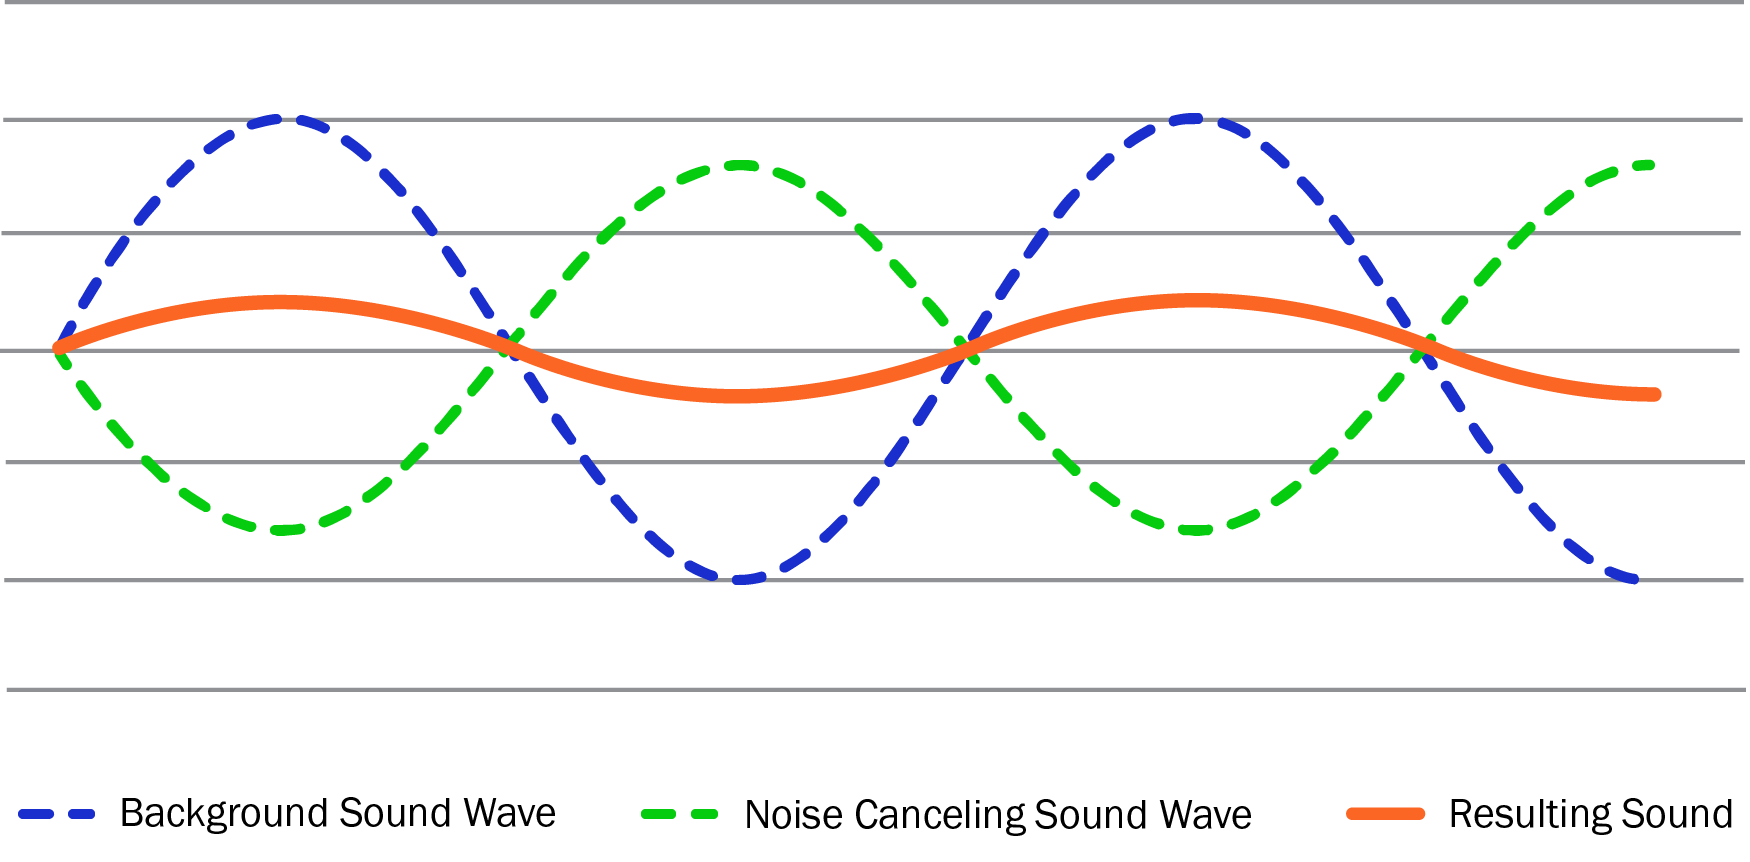 noise cancelation sound wave graphic